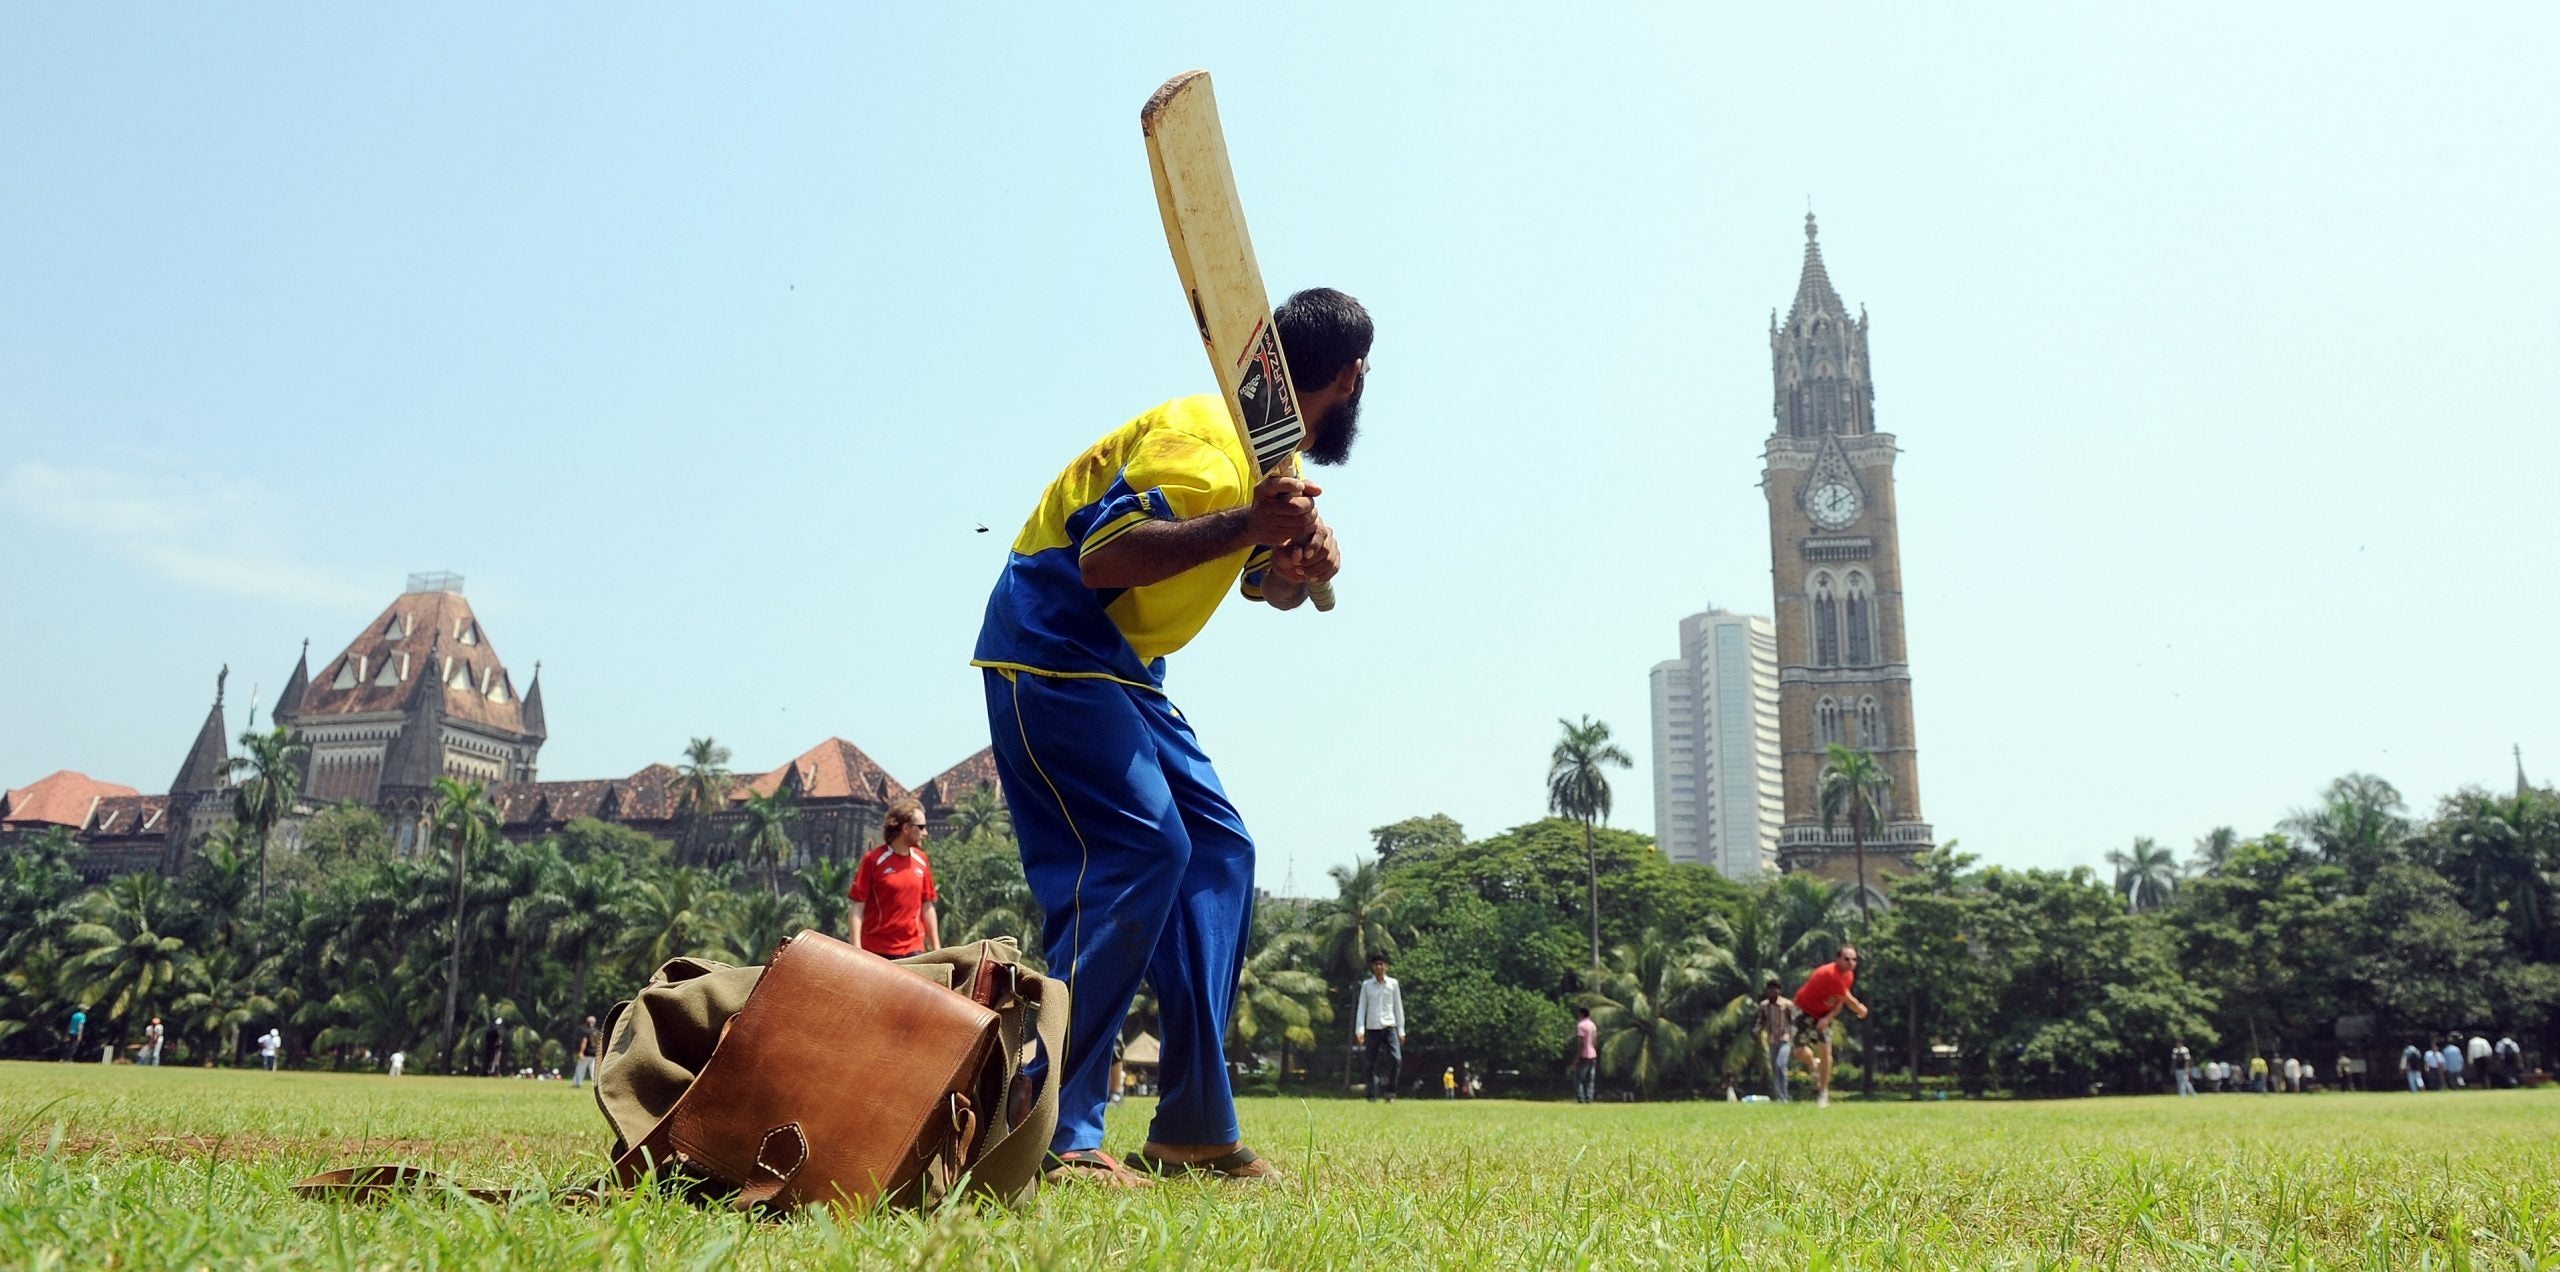 Cricket contains multitudes, and they can all be found on a patch of dusty grass in a park in Mumbai